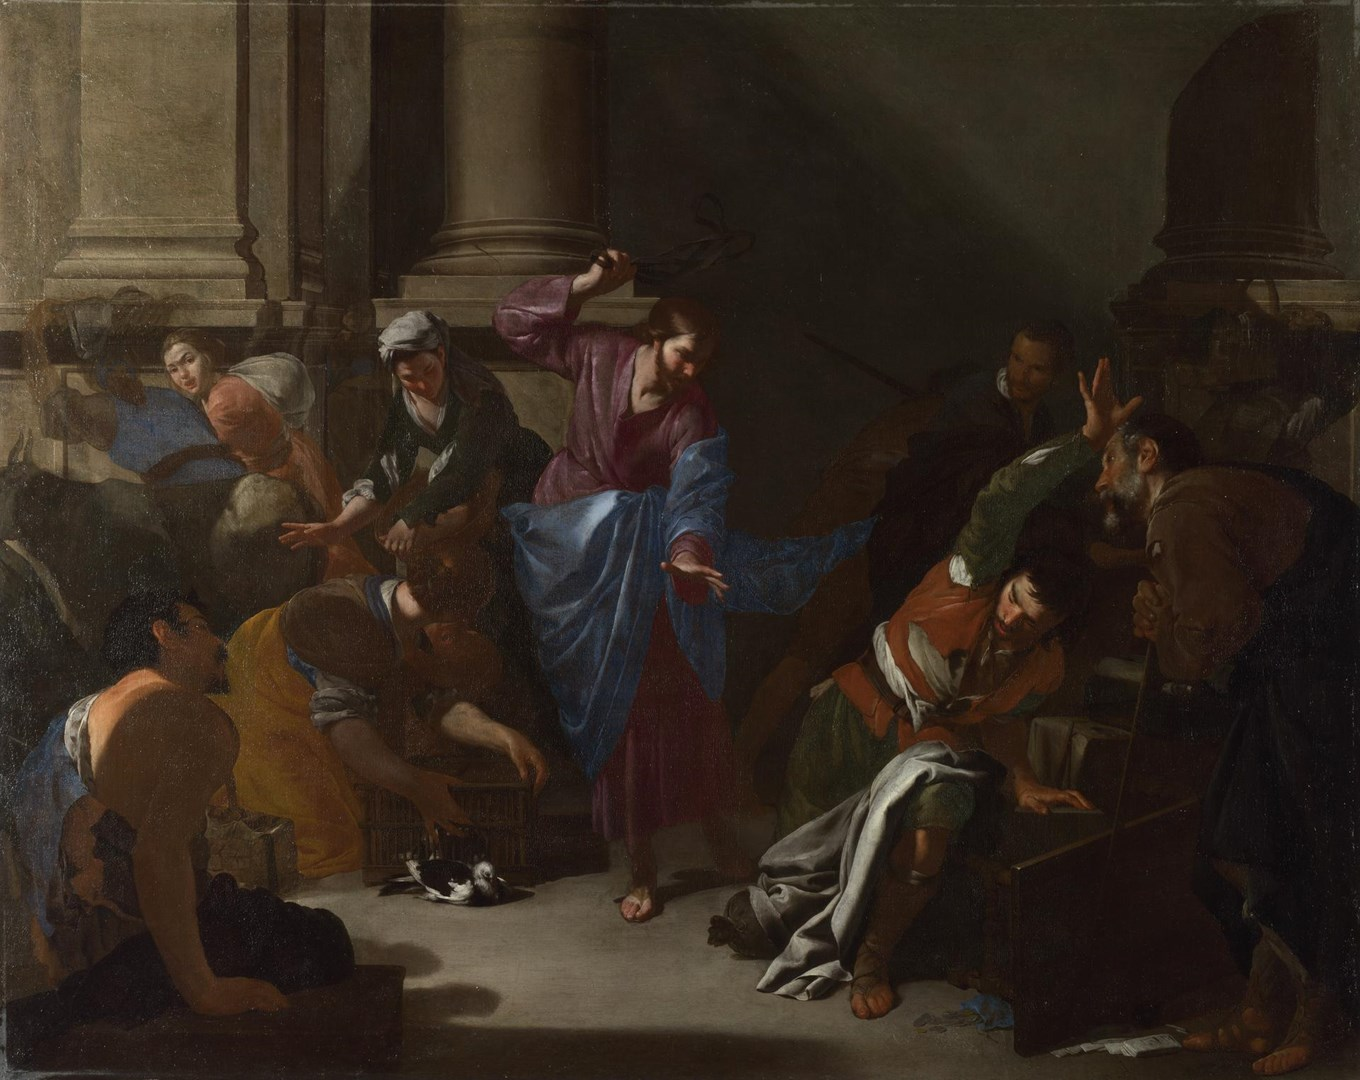 Christ driving the Traders from the Temple by Bernardo Cavallino